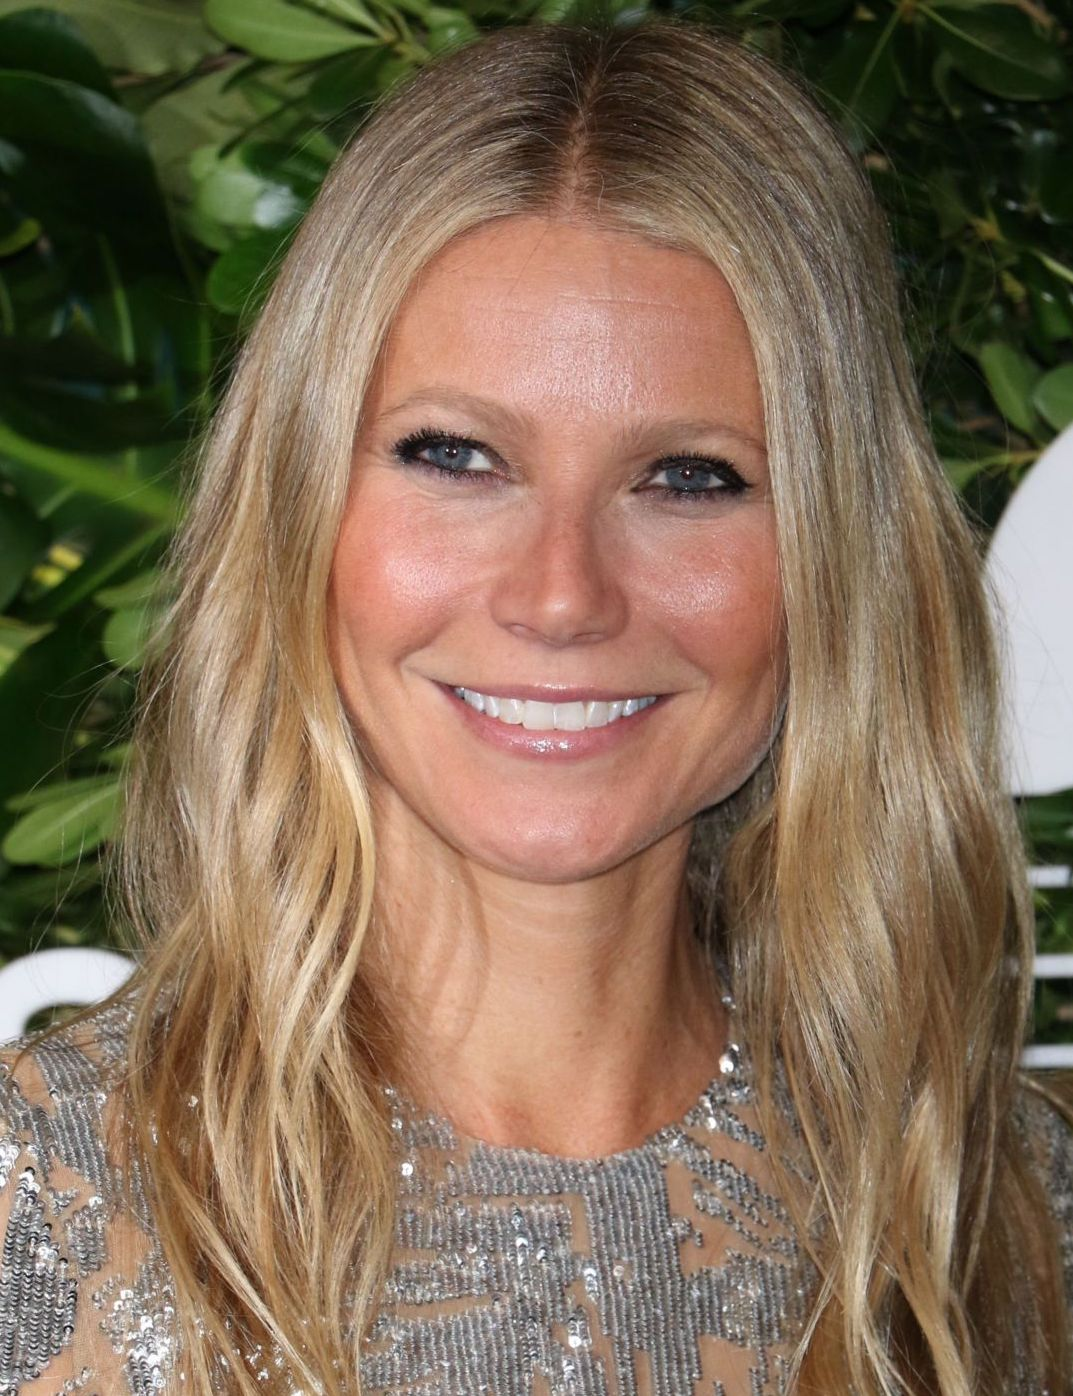 File:Gwyneth Paltrow.jpg